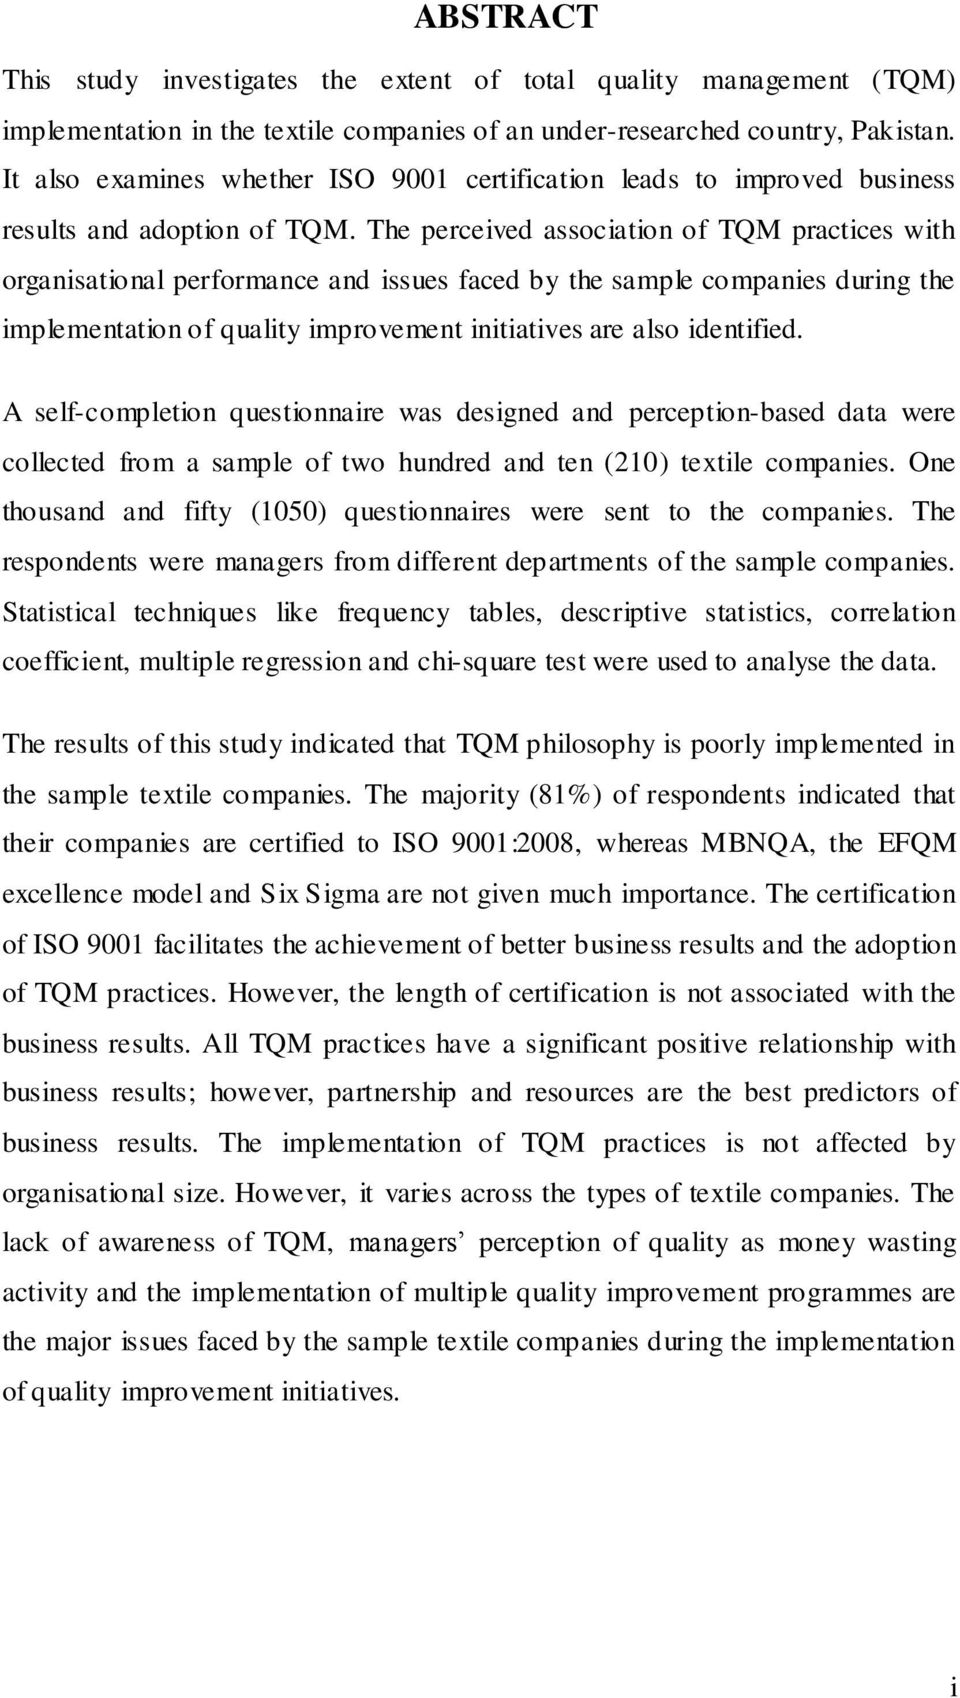 The perceived association of TQM practices with organisational performance and issues faced by the sample companies during the implementation of quality improvement initiatives are also identified.